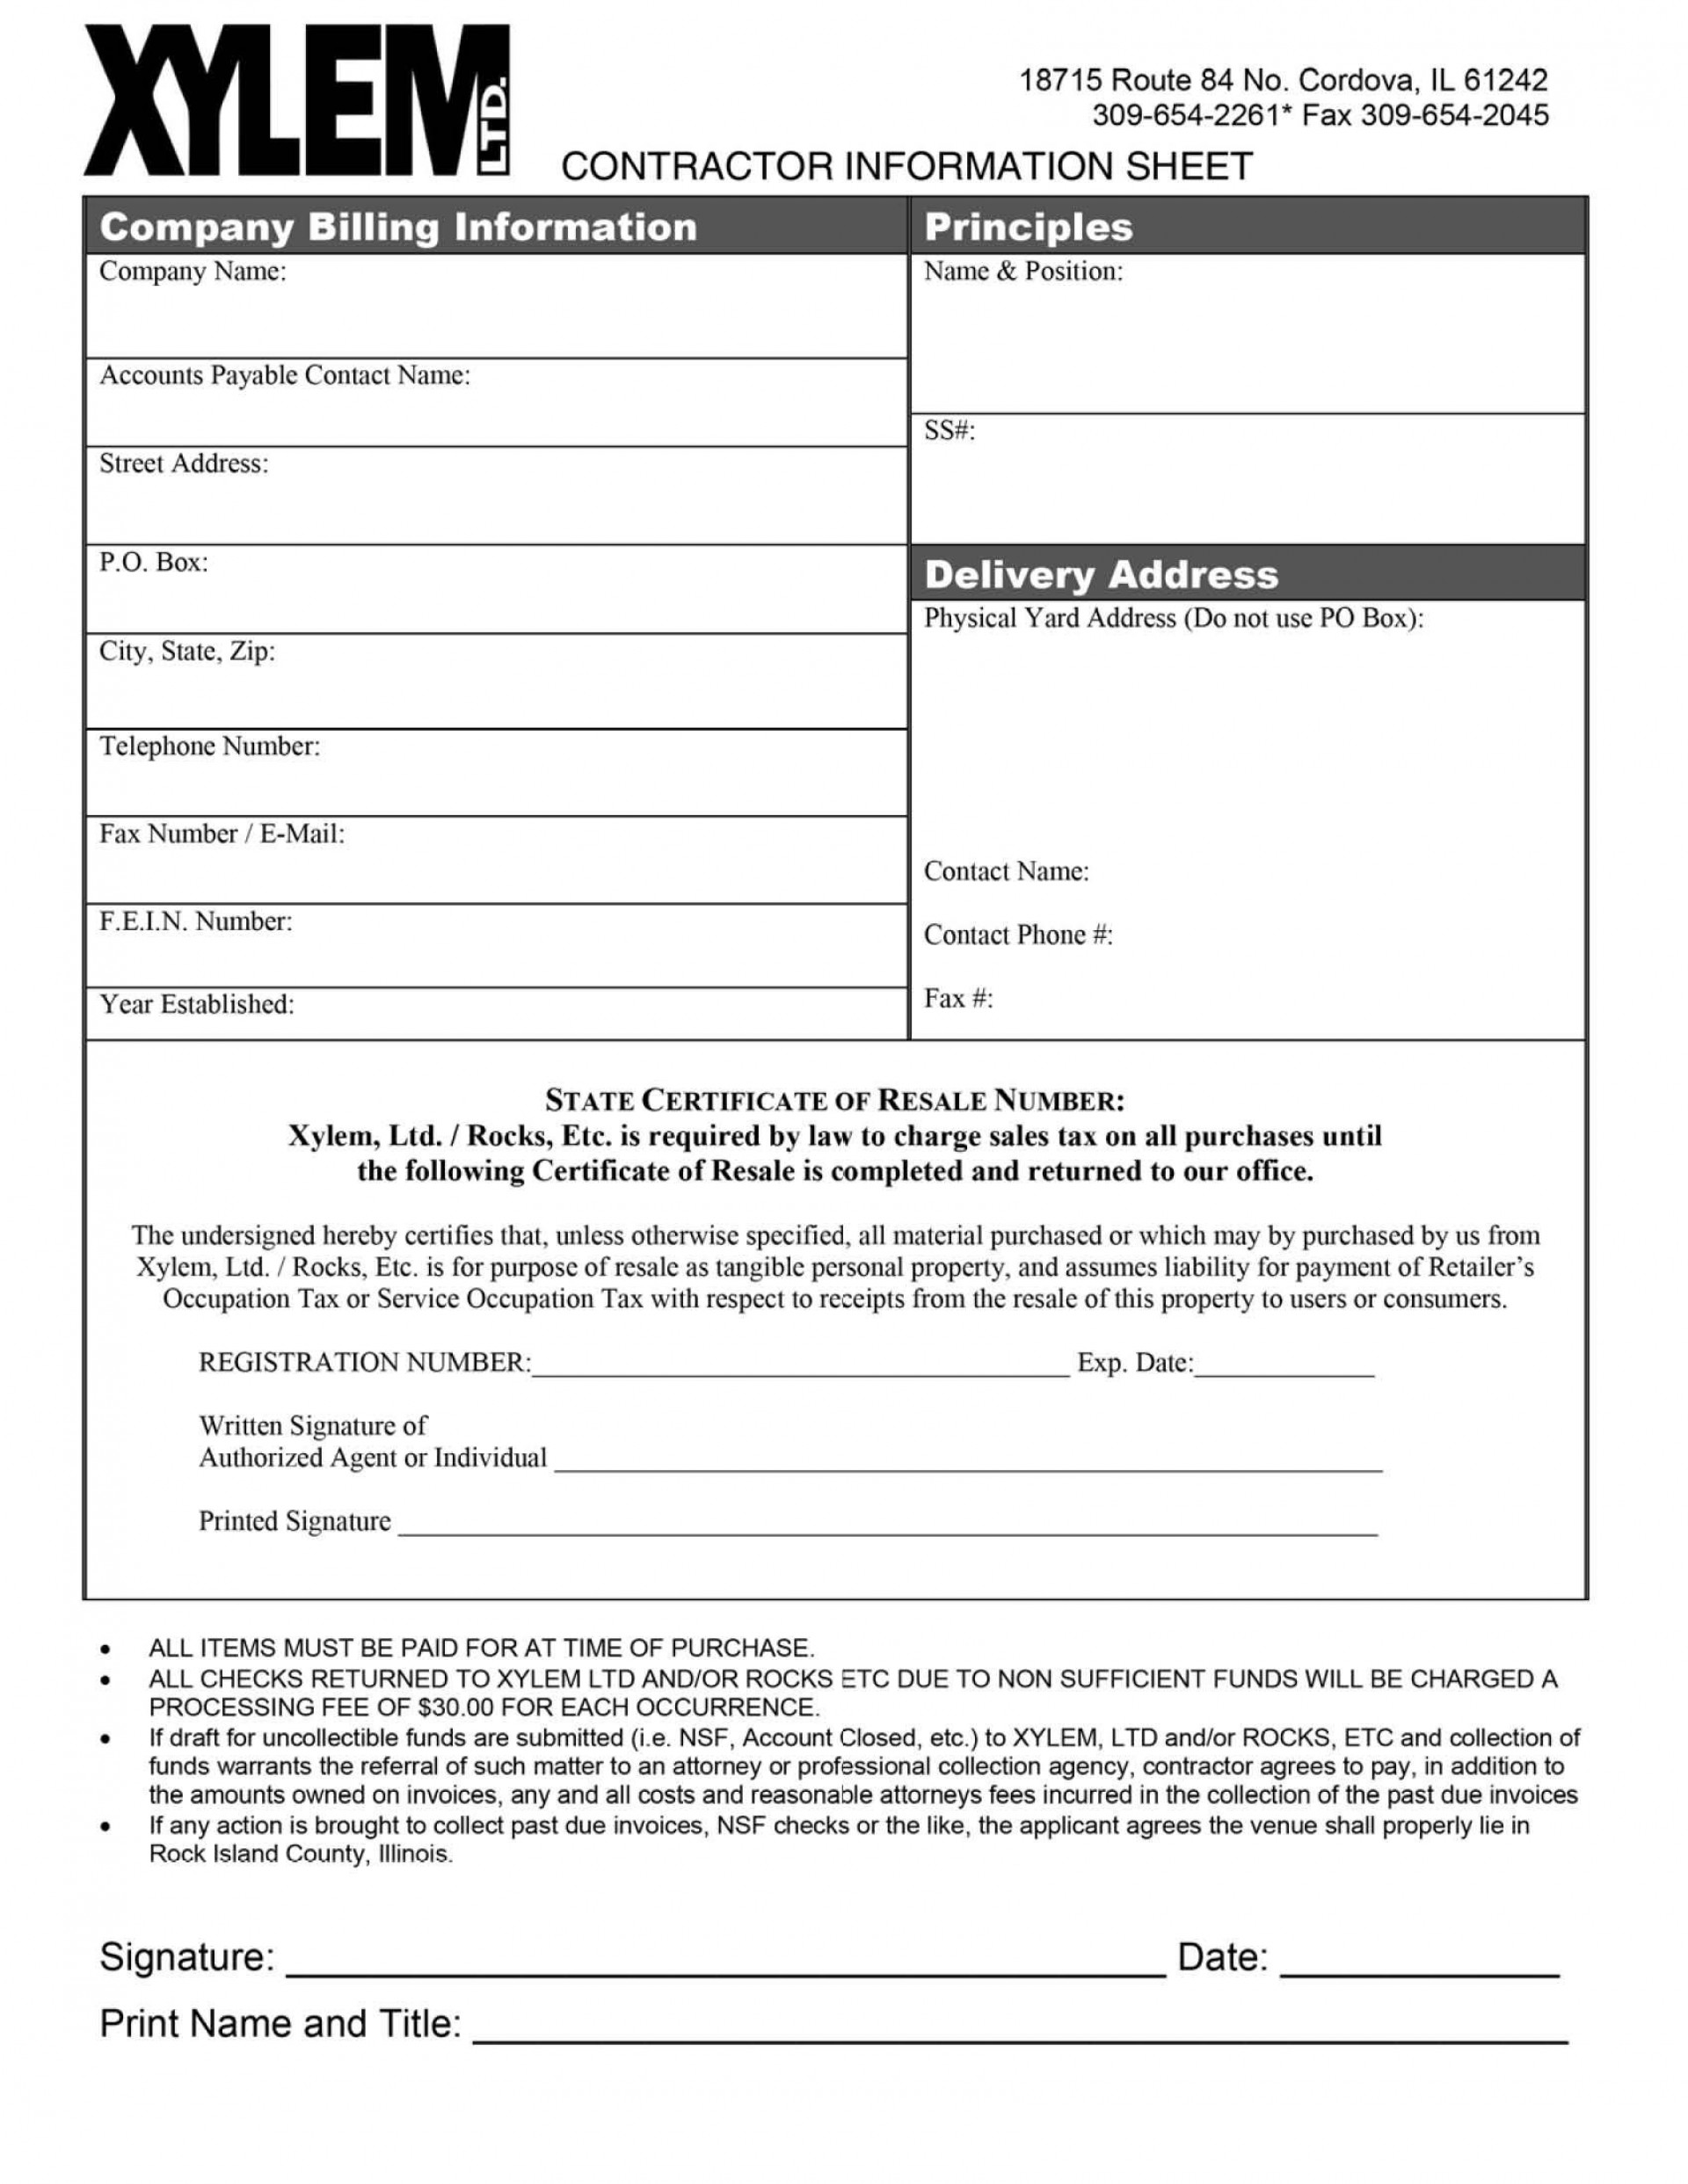 004 Top New User Setup Form Template Highest Clarity  Customer Word Account Vendor Excel1920